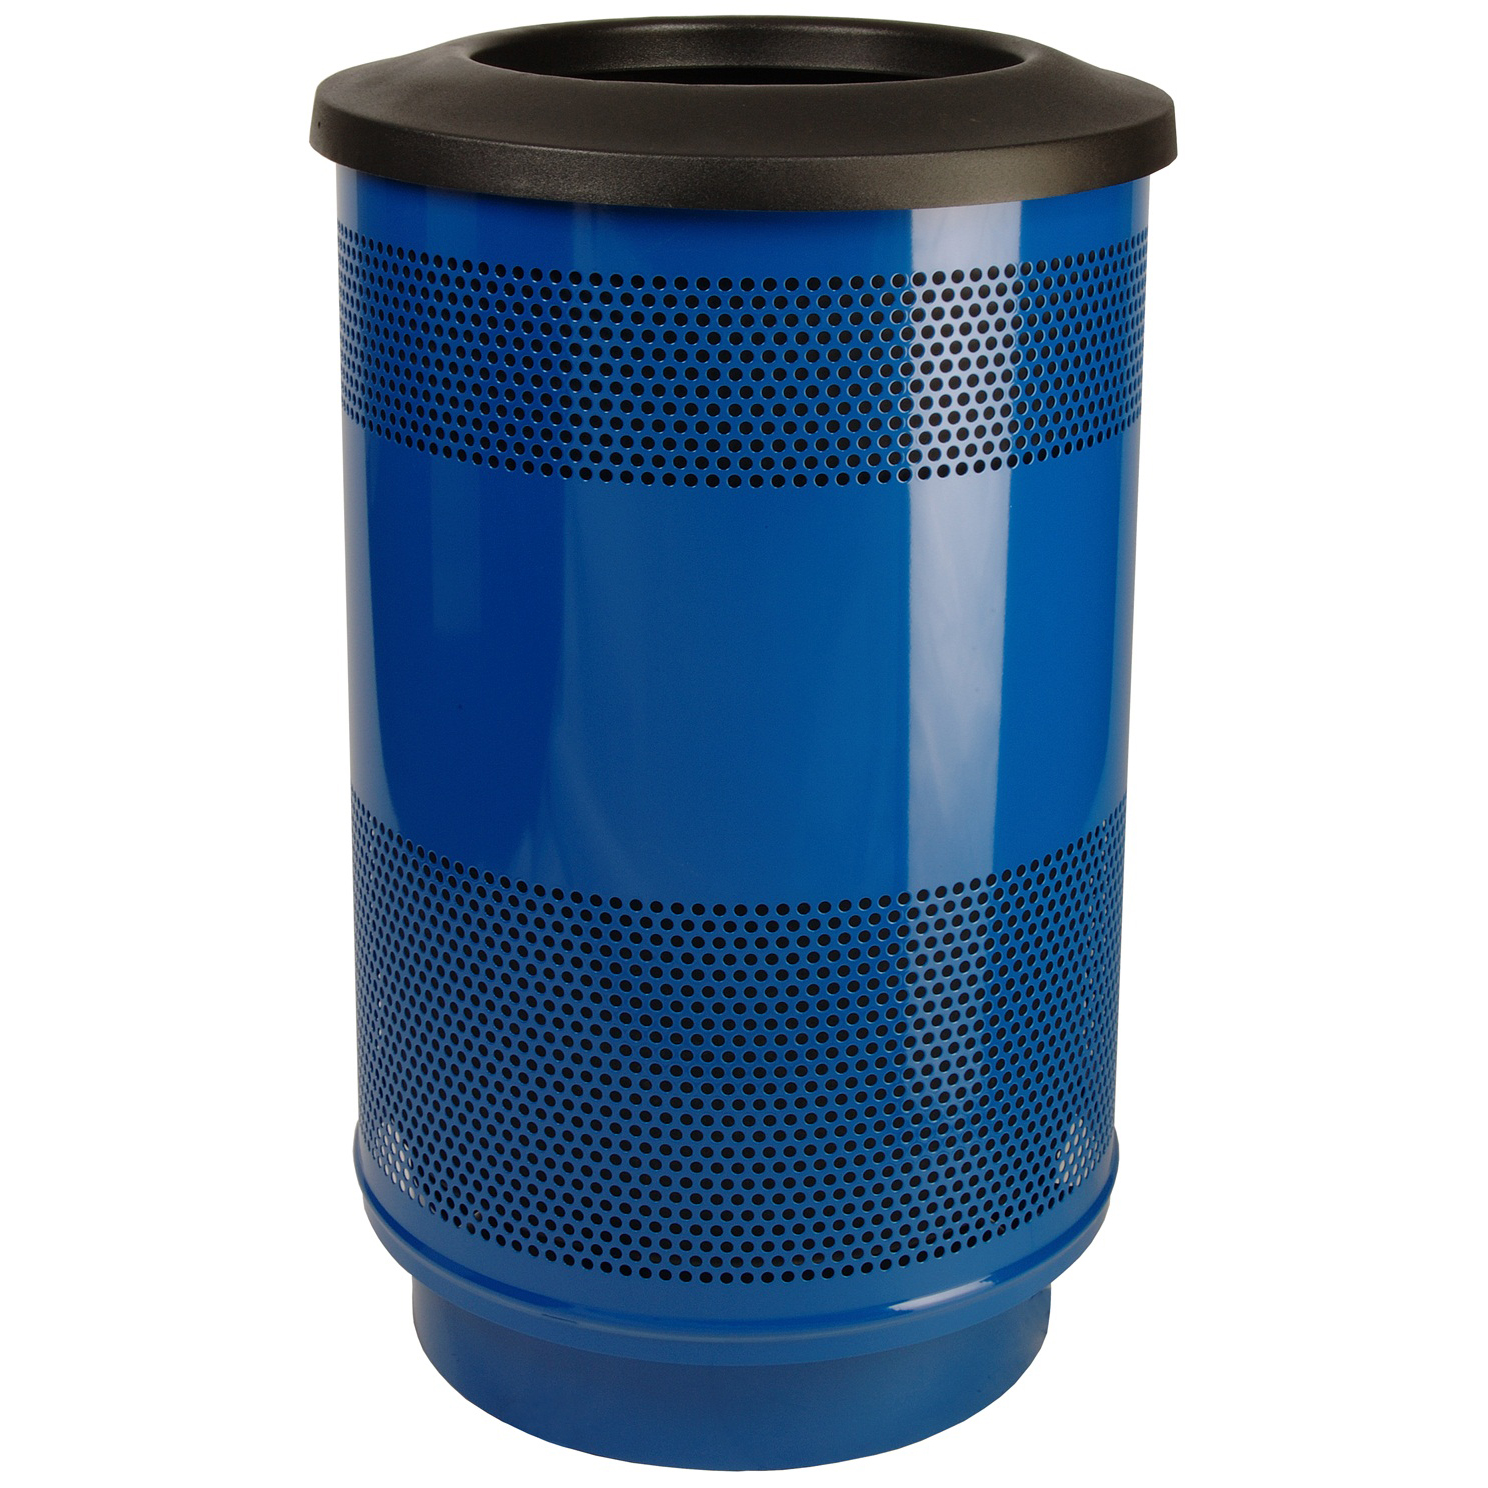 55 gallon perforated garbage can with flat top trash cans warehouse. Black Bedroom Furniture Sets. Home Design Ideas